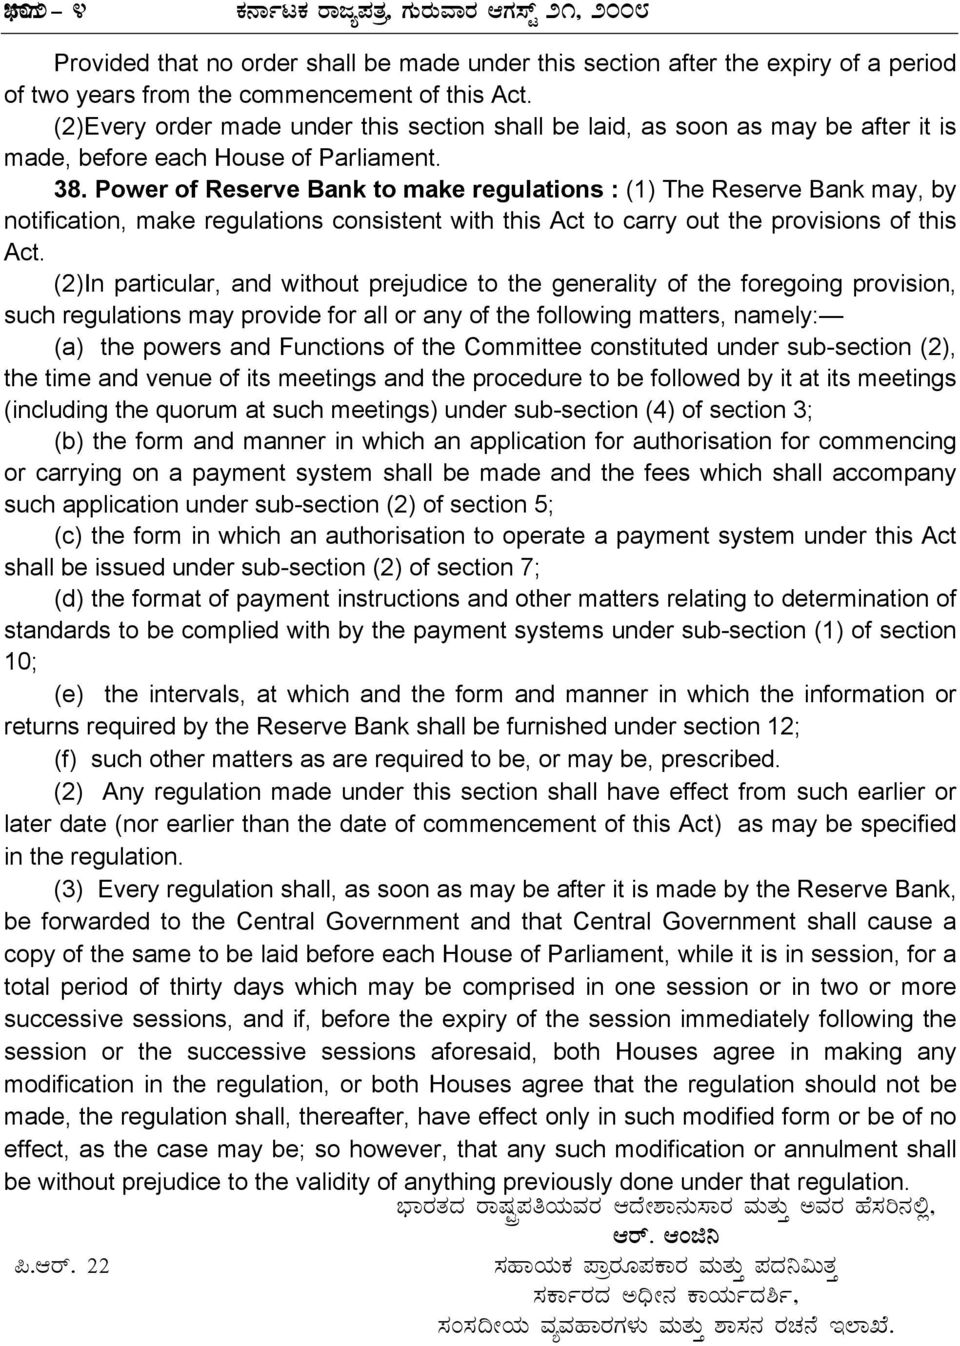 Power of Reserve Bank to make regulations : (1) The Reserve Bank may, by notification, make regulations consistent with this Act to carry out the provisions of this Act.